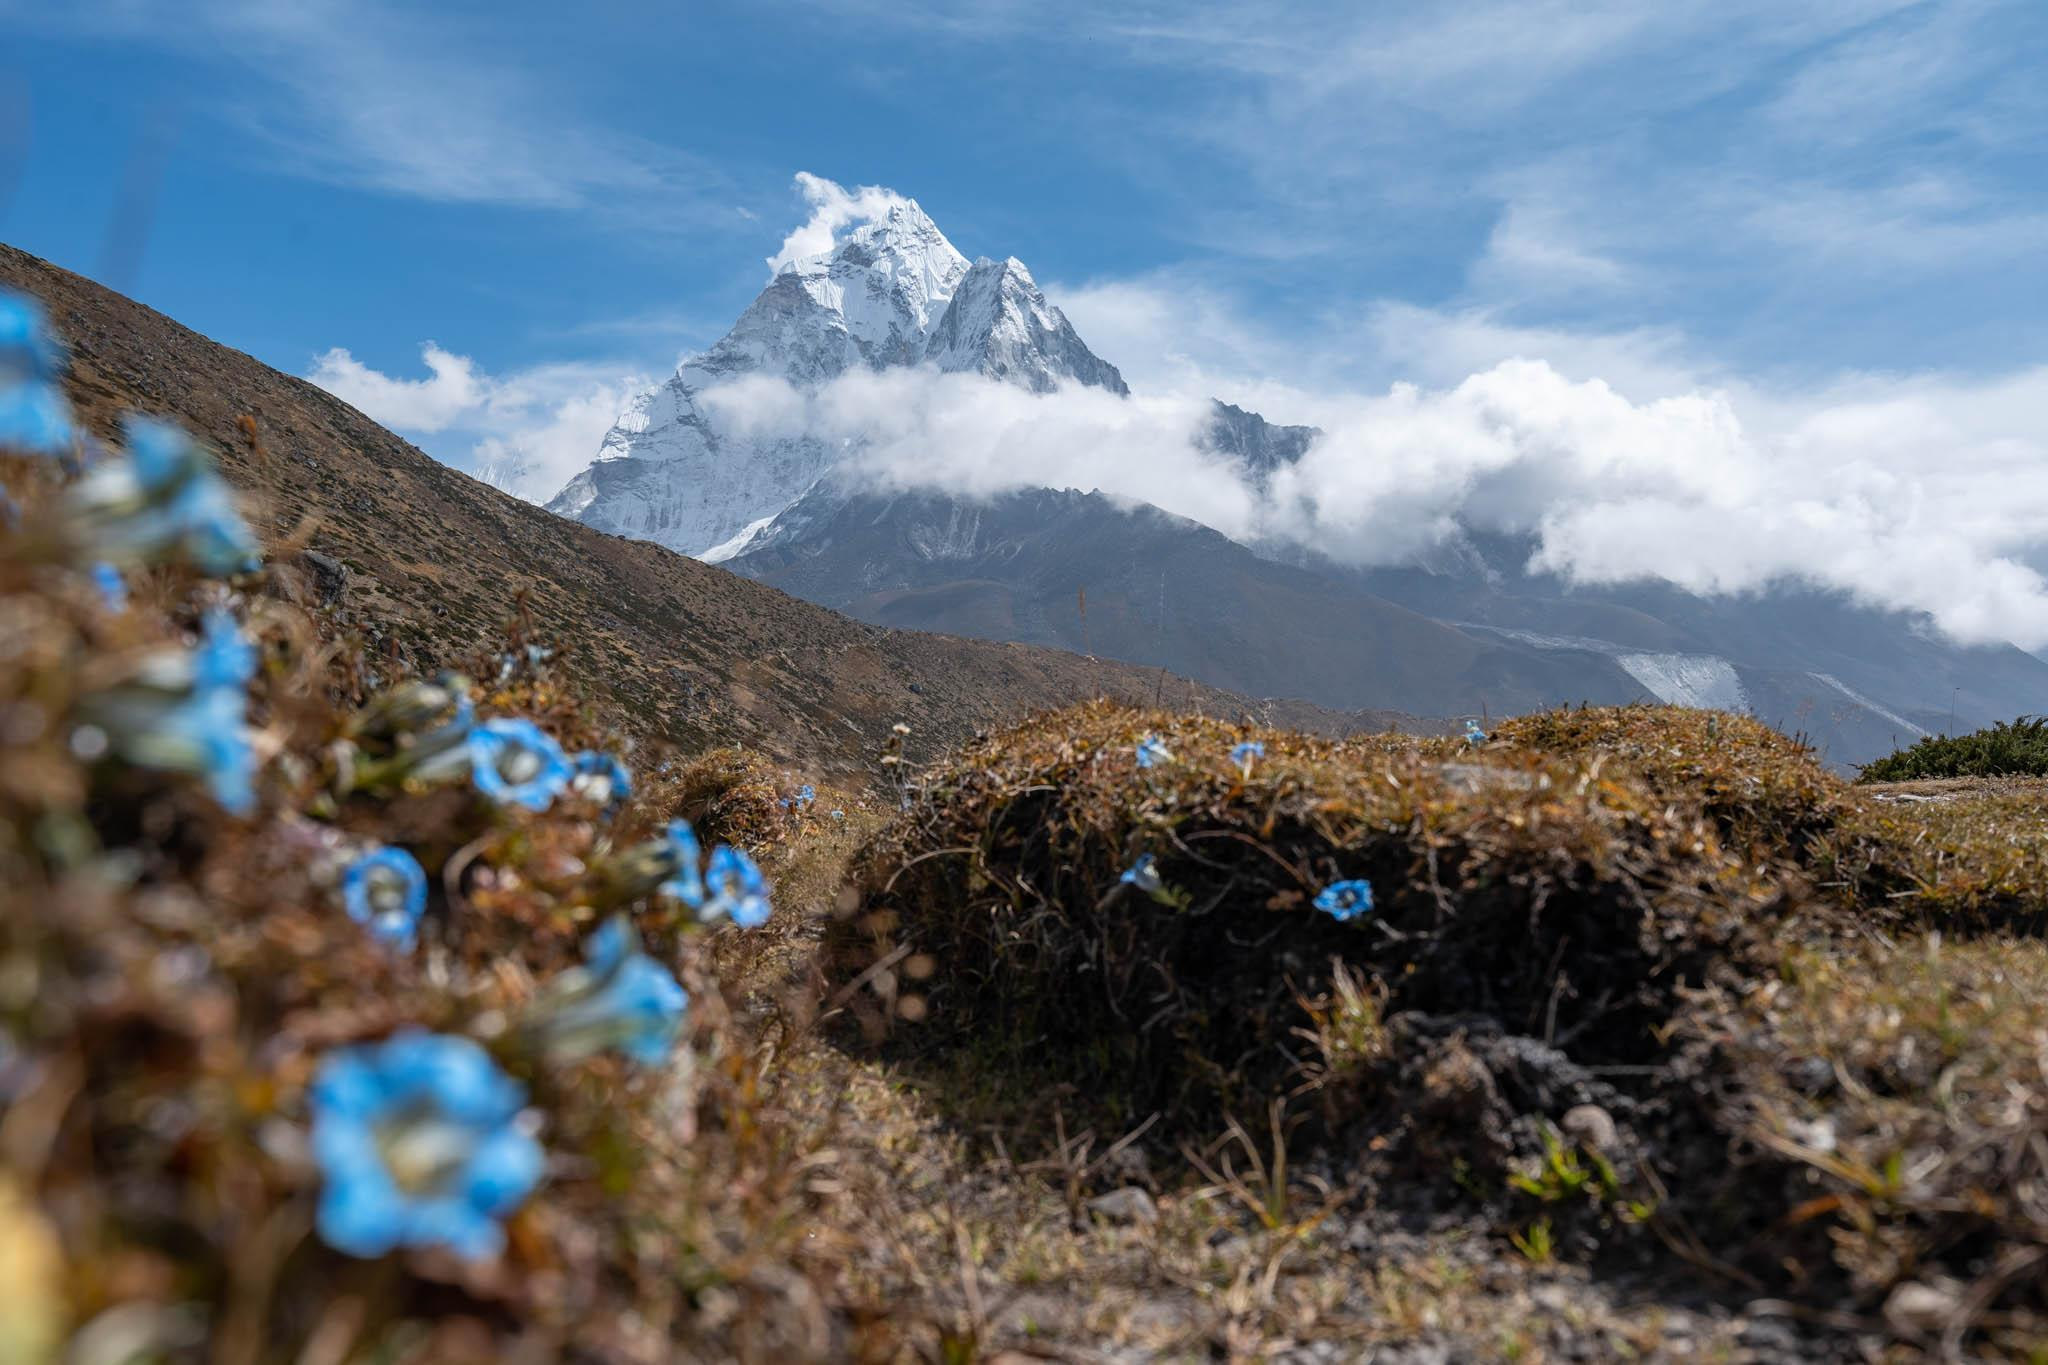 Small blue flowers and a view of Mount Everest